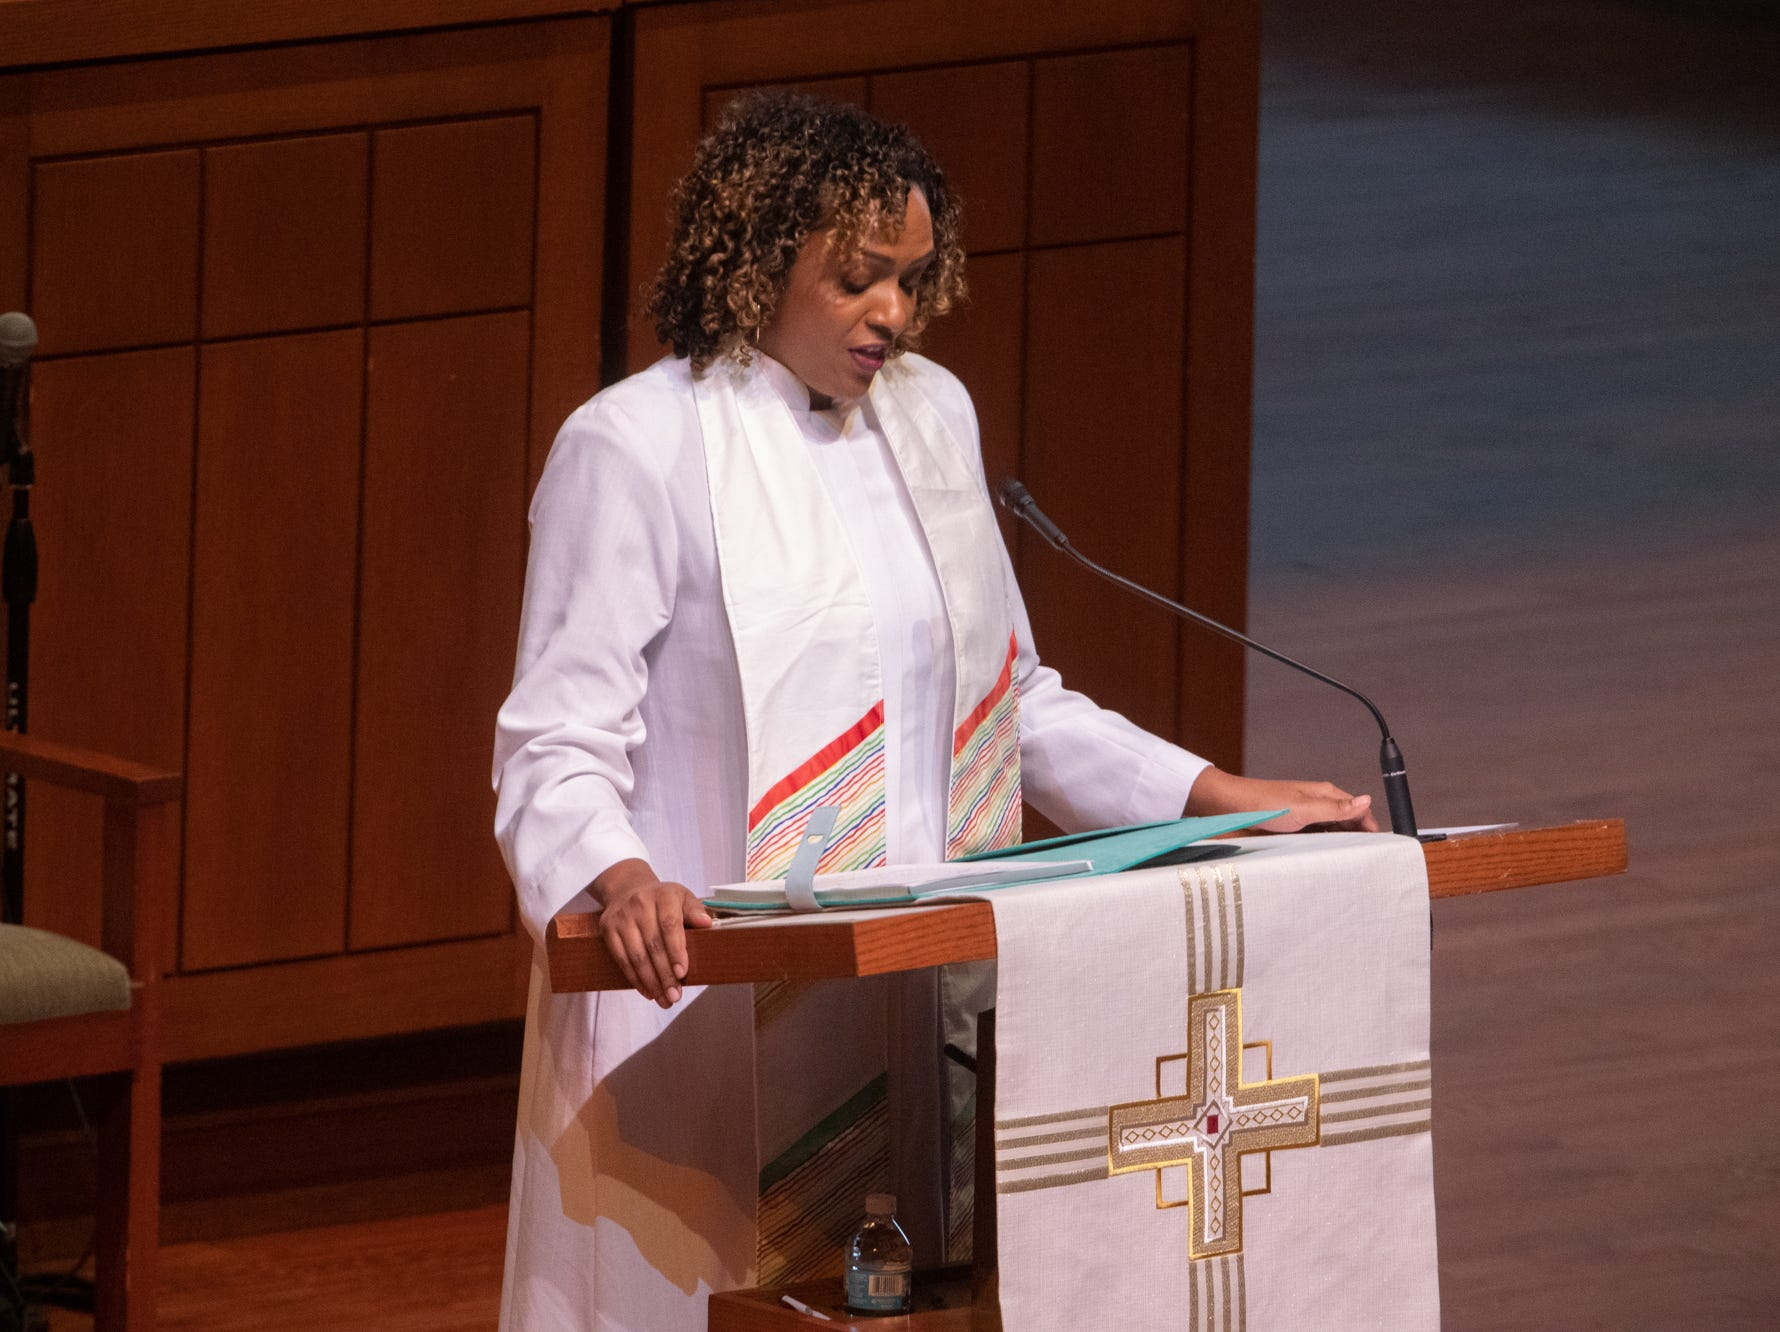 Rev. Nicole Caldwell-Gross, Saint Luke's United Methodist Church Pastor of Outreach, reads a prayer during former U.S. Sen. Richard Lugar's memorial service, held at Saint Luke's United Methodist Church in Indianapolis, on Wednesday, May 15, 2019. Lugar served as mayor of Indianapolis from 1968 to 1975 and U.S. senator from 1977 to 2013. He died April 28, 2019, at the age of 87.